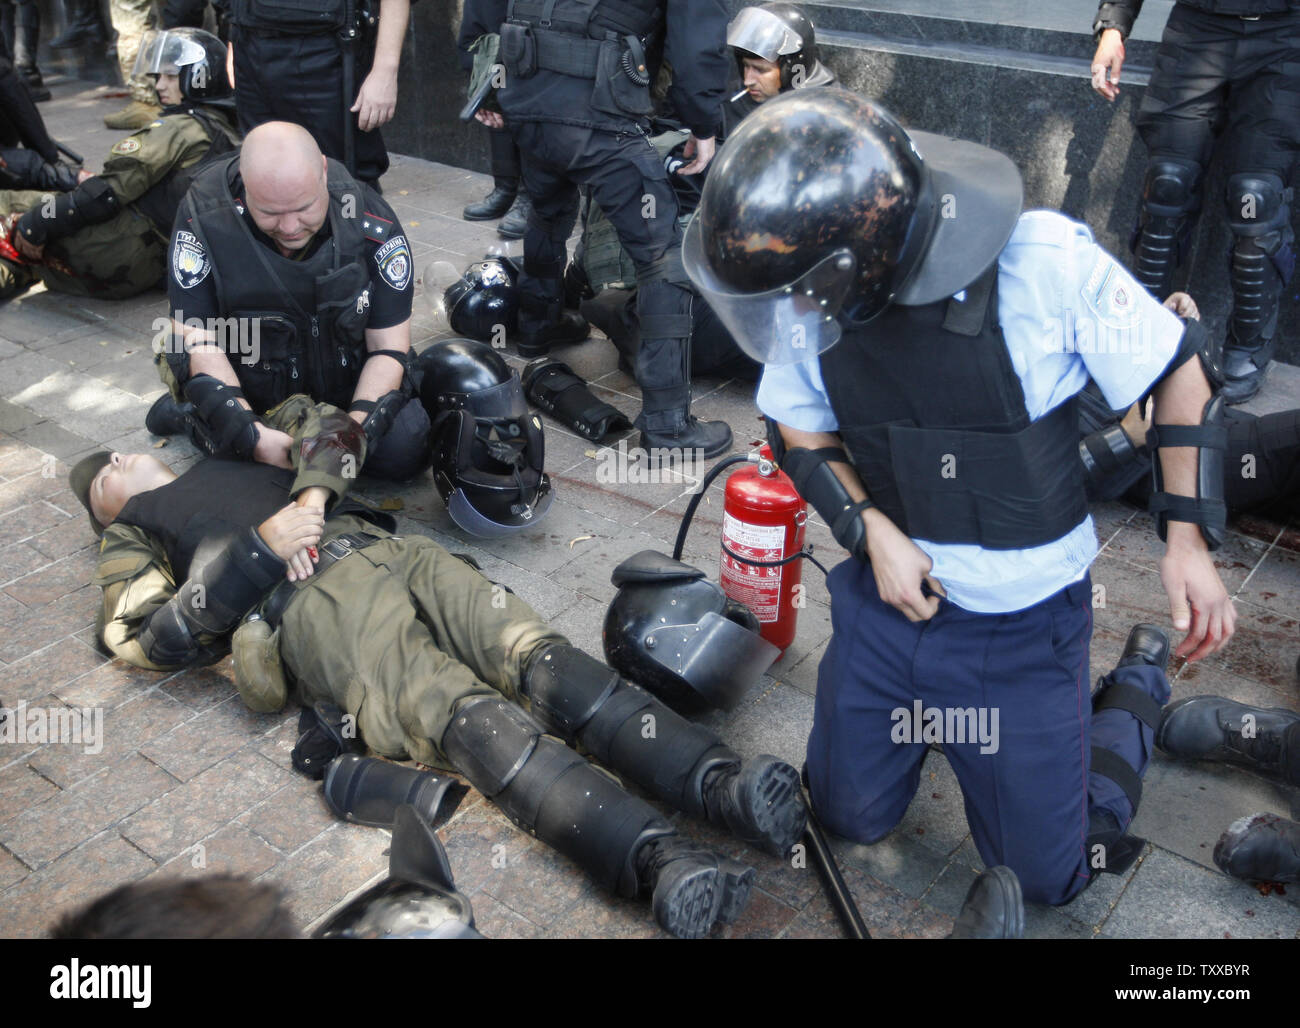 Ukrainian riot police officer is injured after a grenade blast during a clash with protesters outside the parliament in Kiev on August 31, 2015. Hundreds of people gathered in front of the parliament to protest against an approved  constitutional amendment on decentralization to separatist regions.   Photo by Ivan Vakolenko/UPI Stock Photo